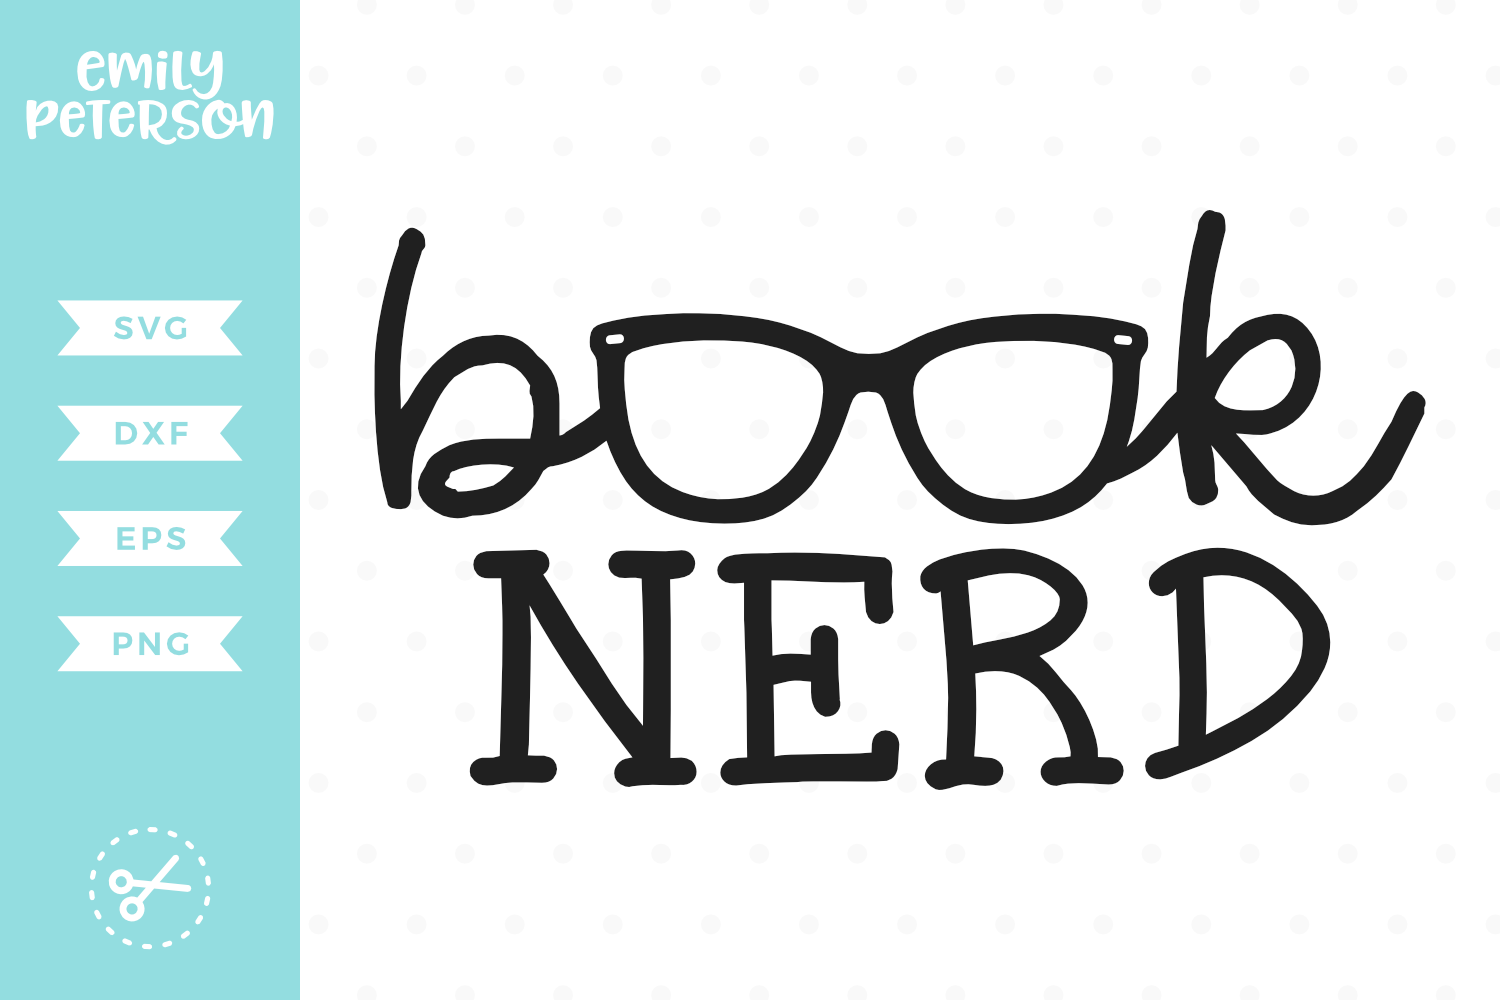 Book Nerd SVG DXF EPS PNG example image 1